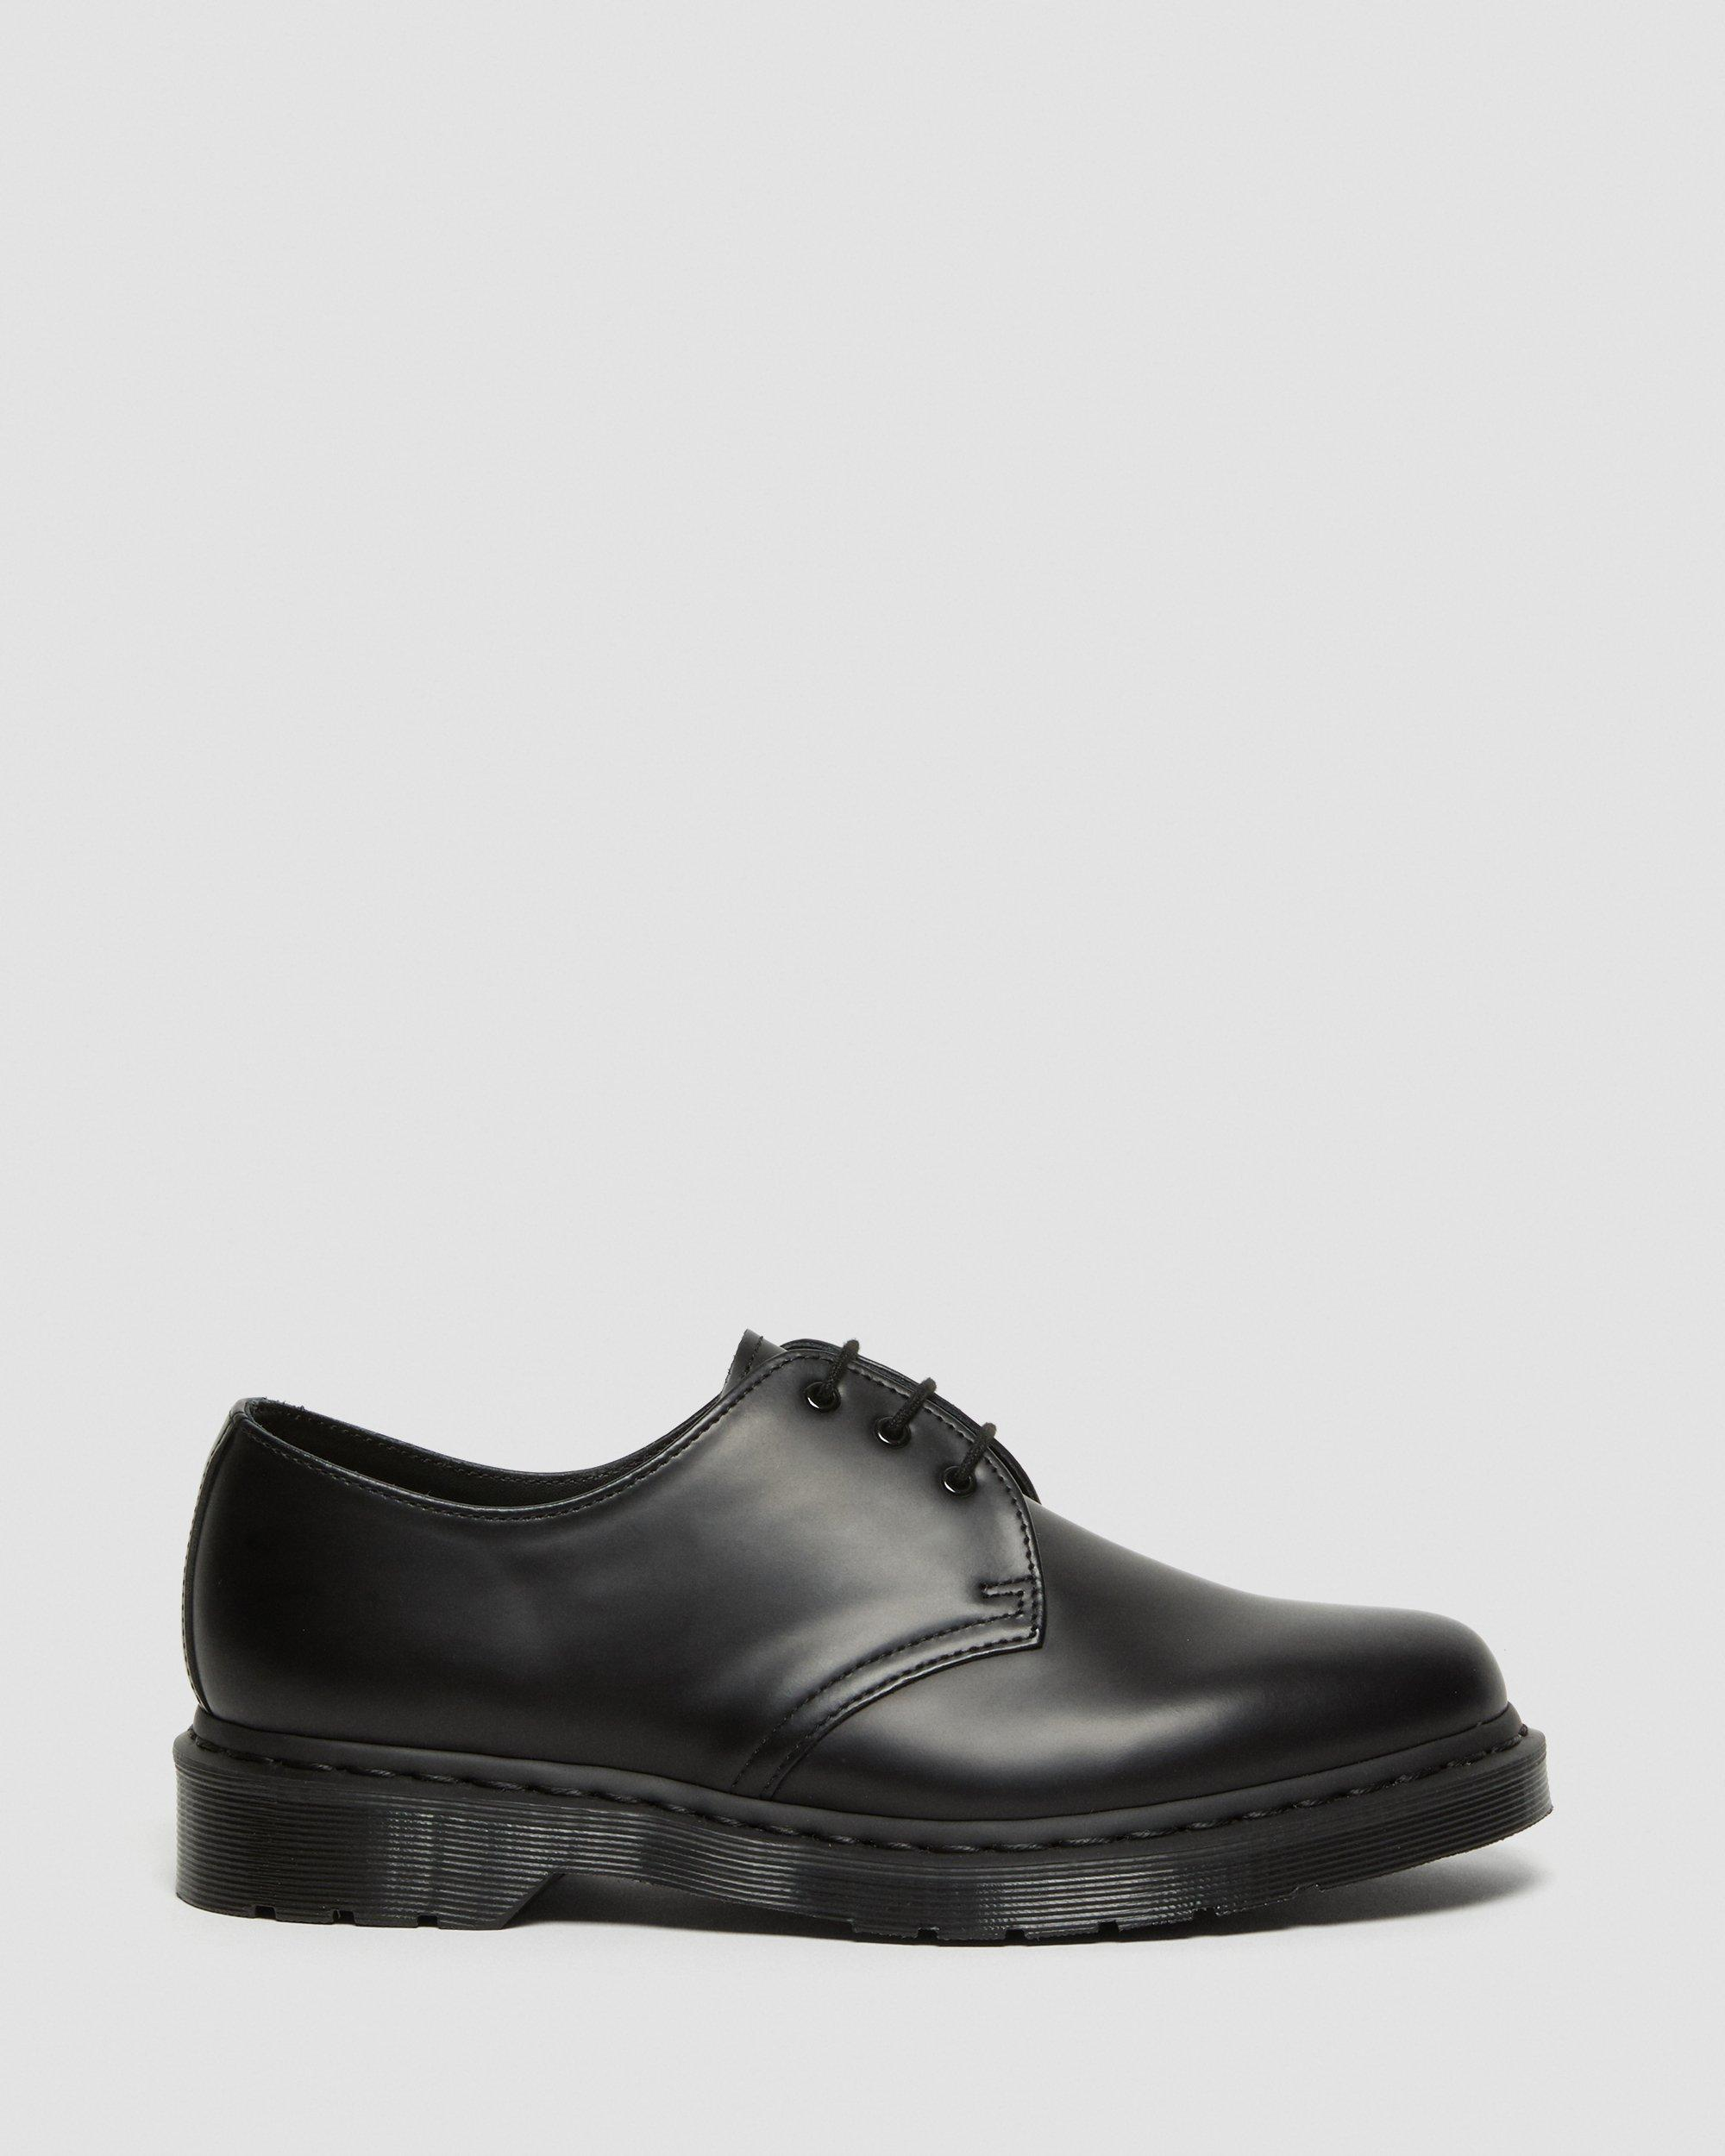 1461 MONO SMOOTH LEATHER SHOES | Dr